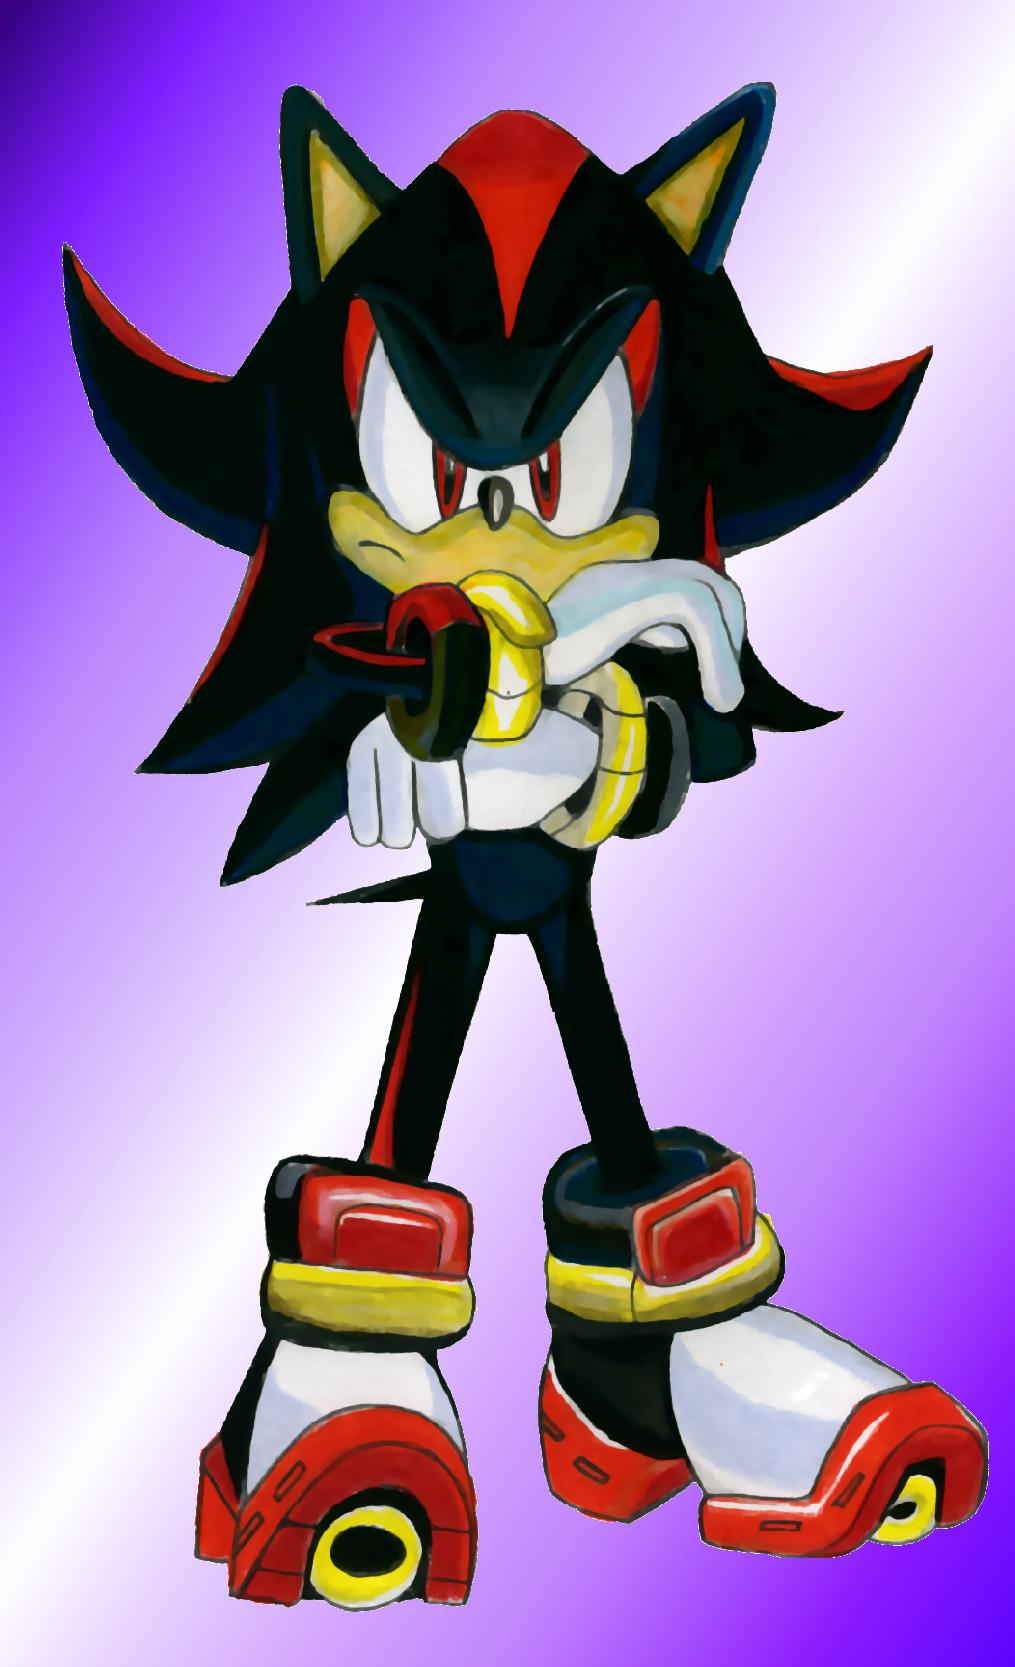 Shadows Death Sonic Adventure 2 Related Keywords & Suggestions